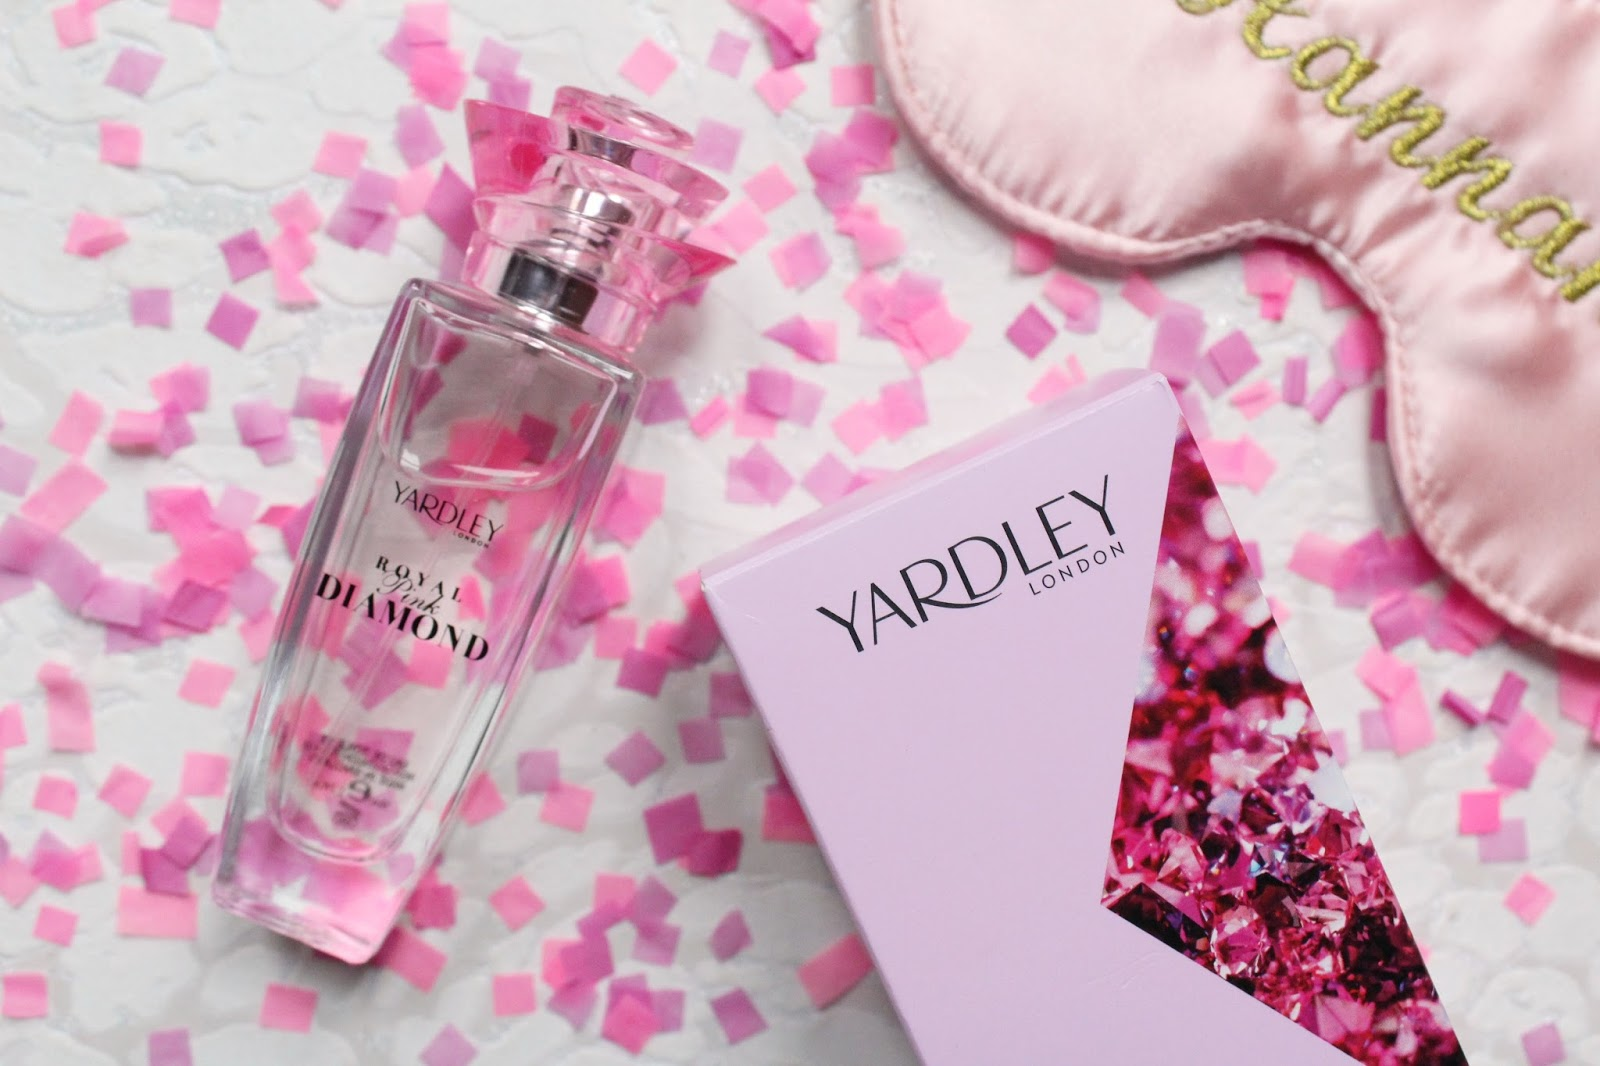 Yardley Royal Pink Diamond Fragrance